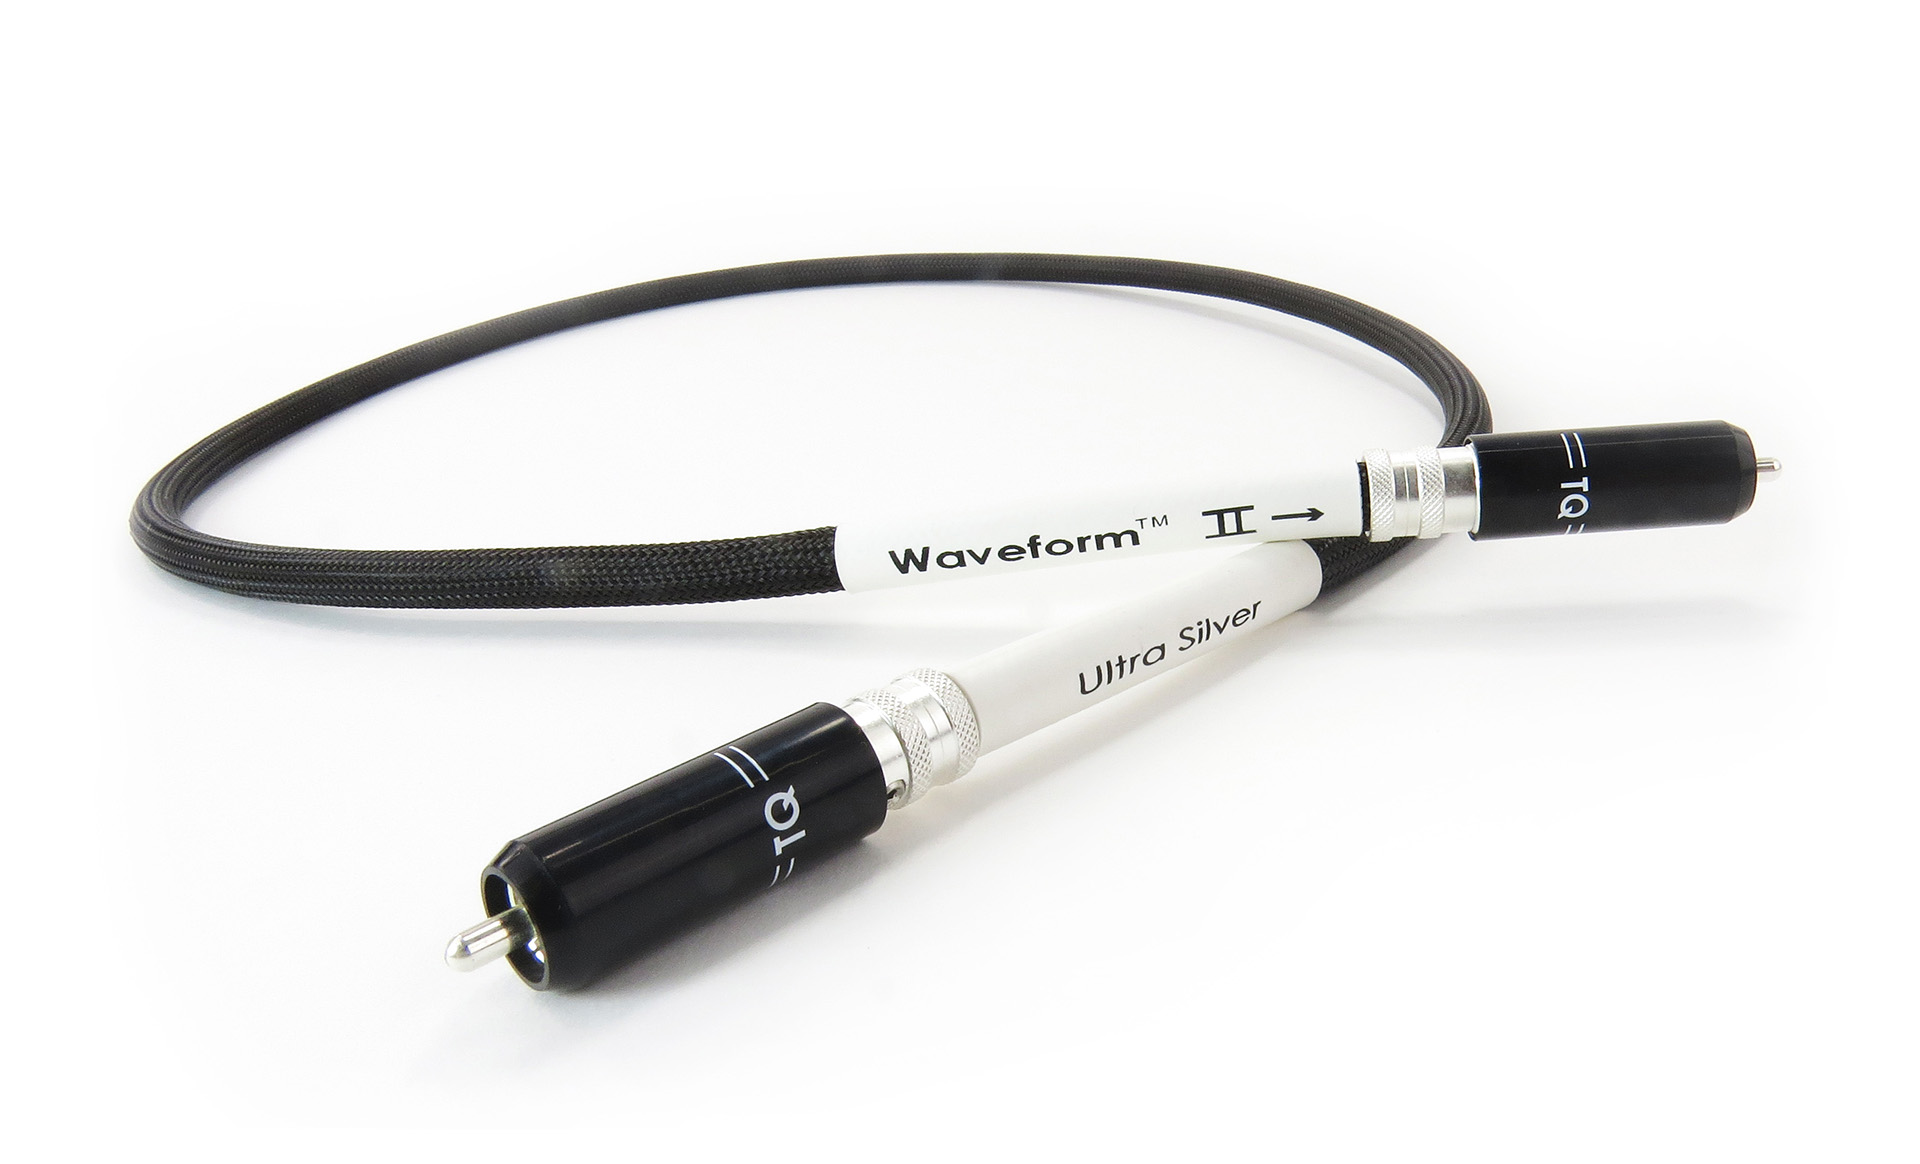 Tellurium Q | Ultra Silver | Digital Waveform™ II RCA